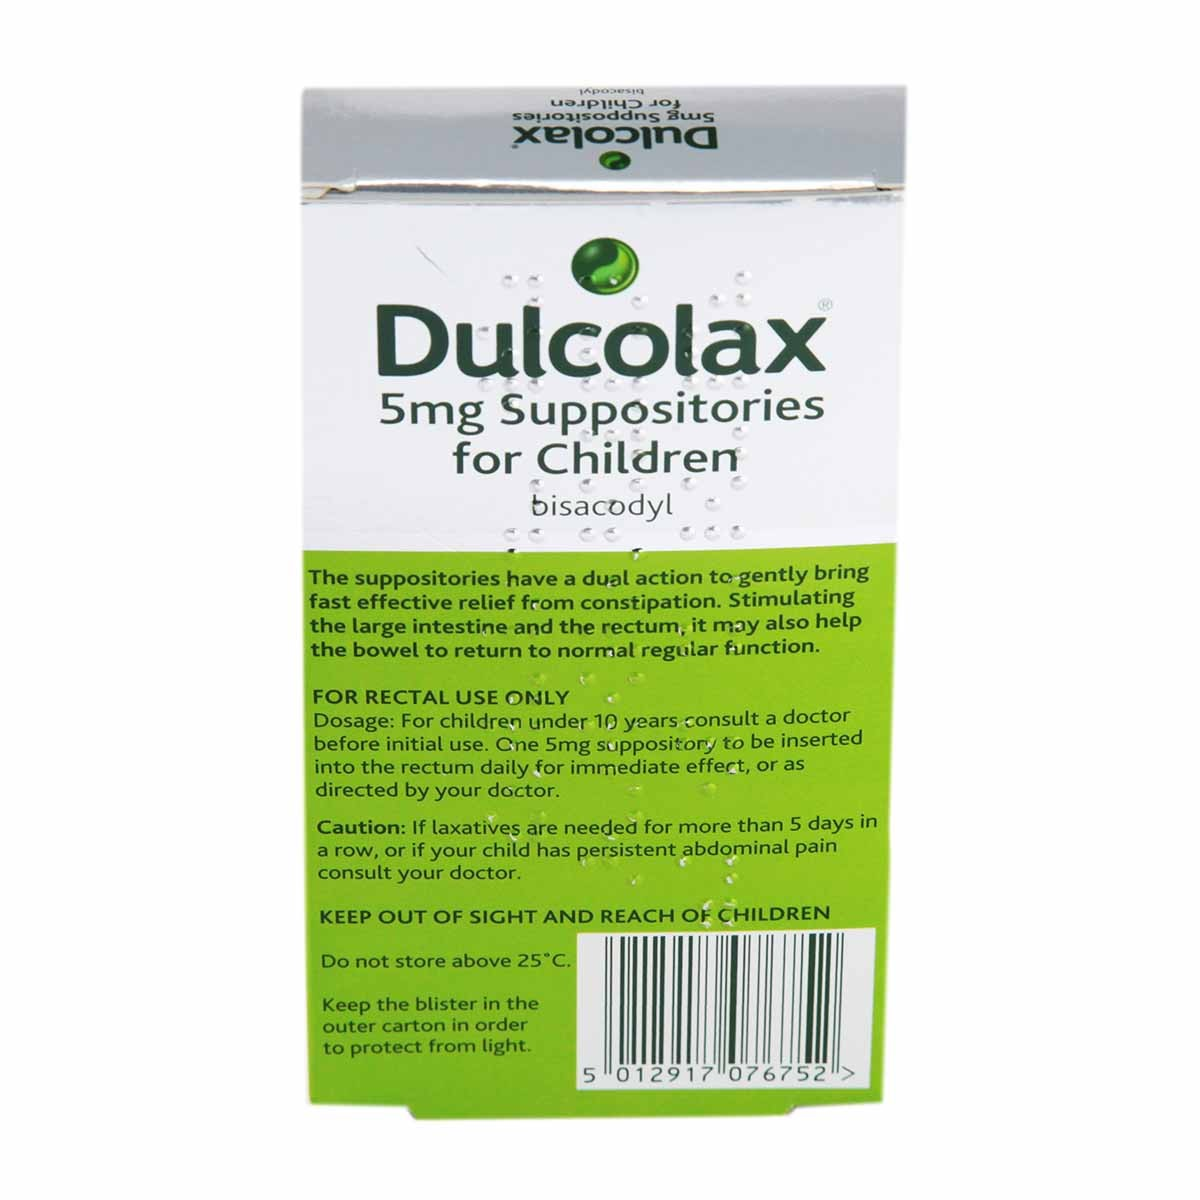 Dulcolax 5mg Suppositories For Children